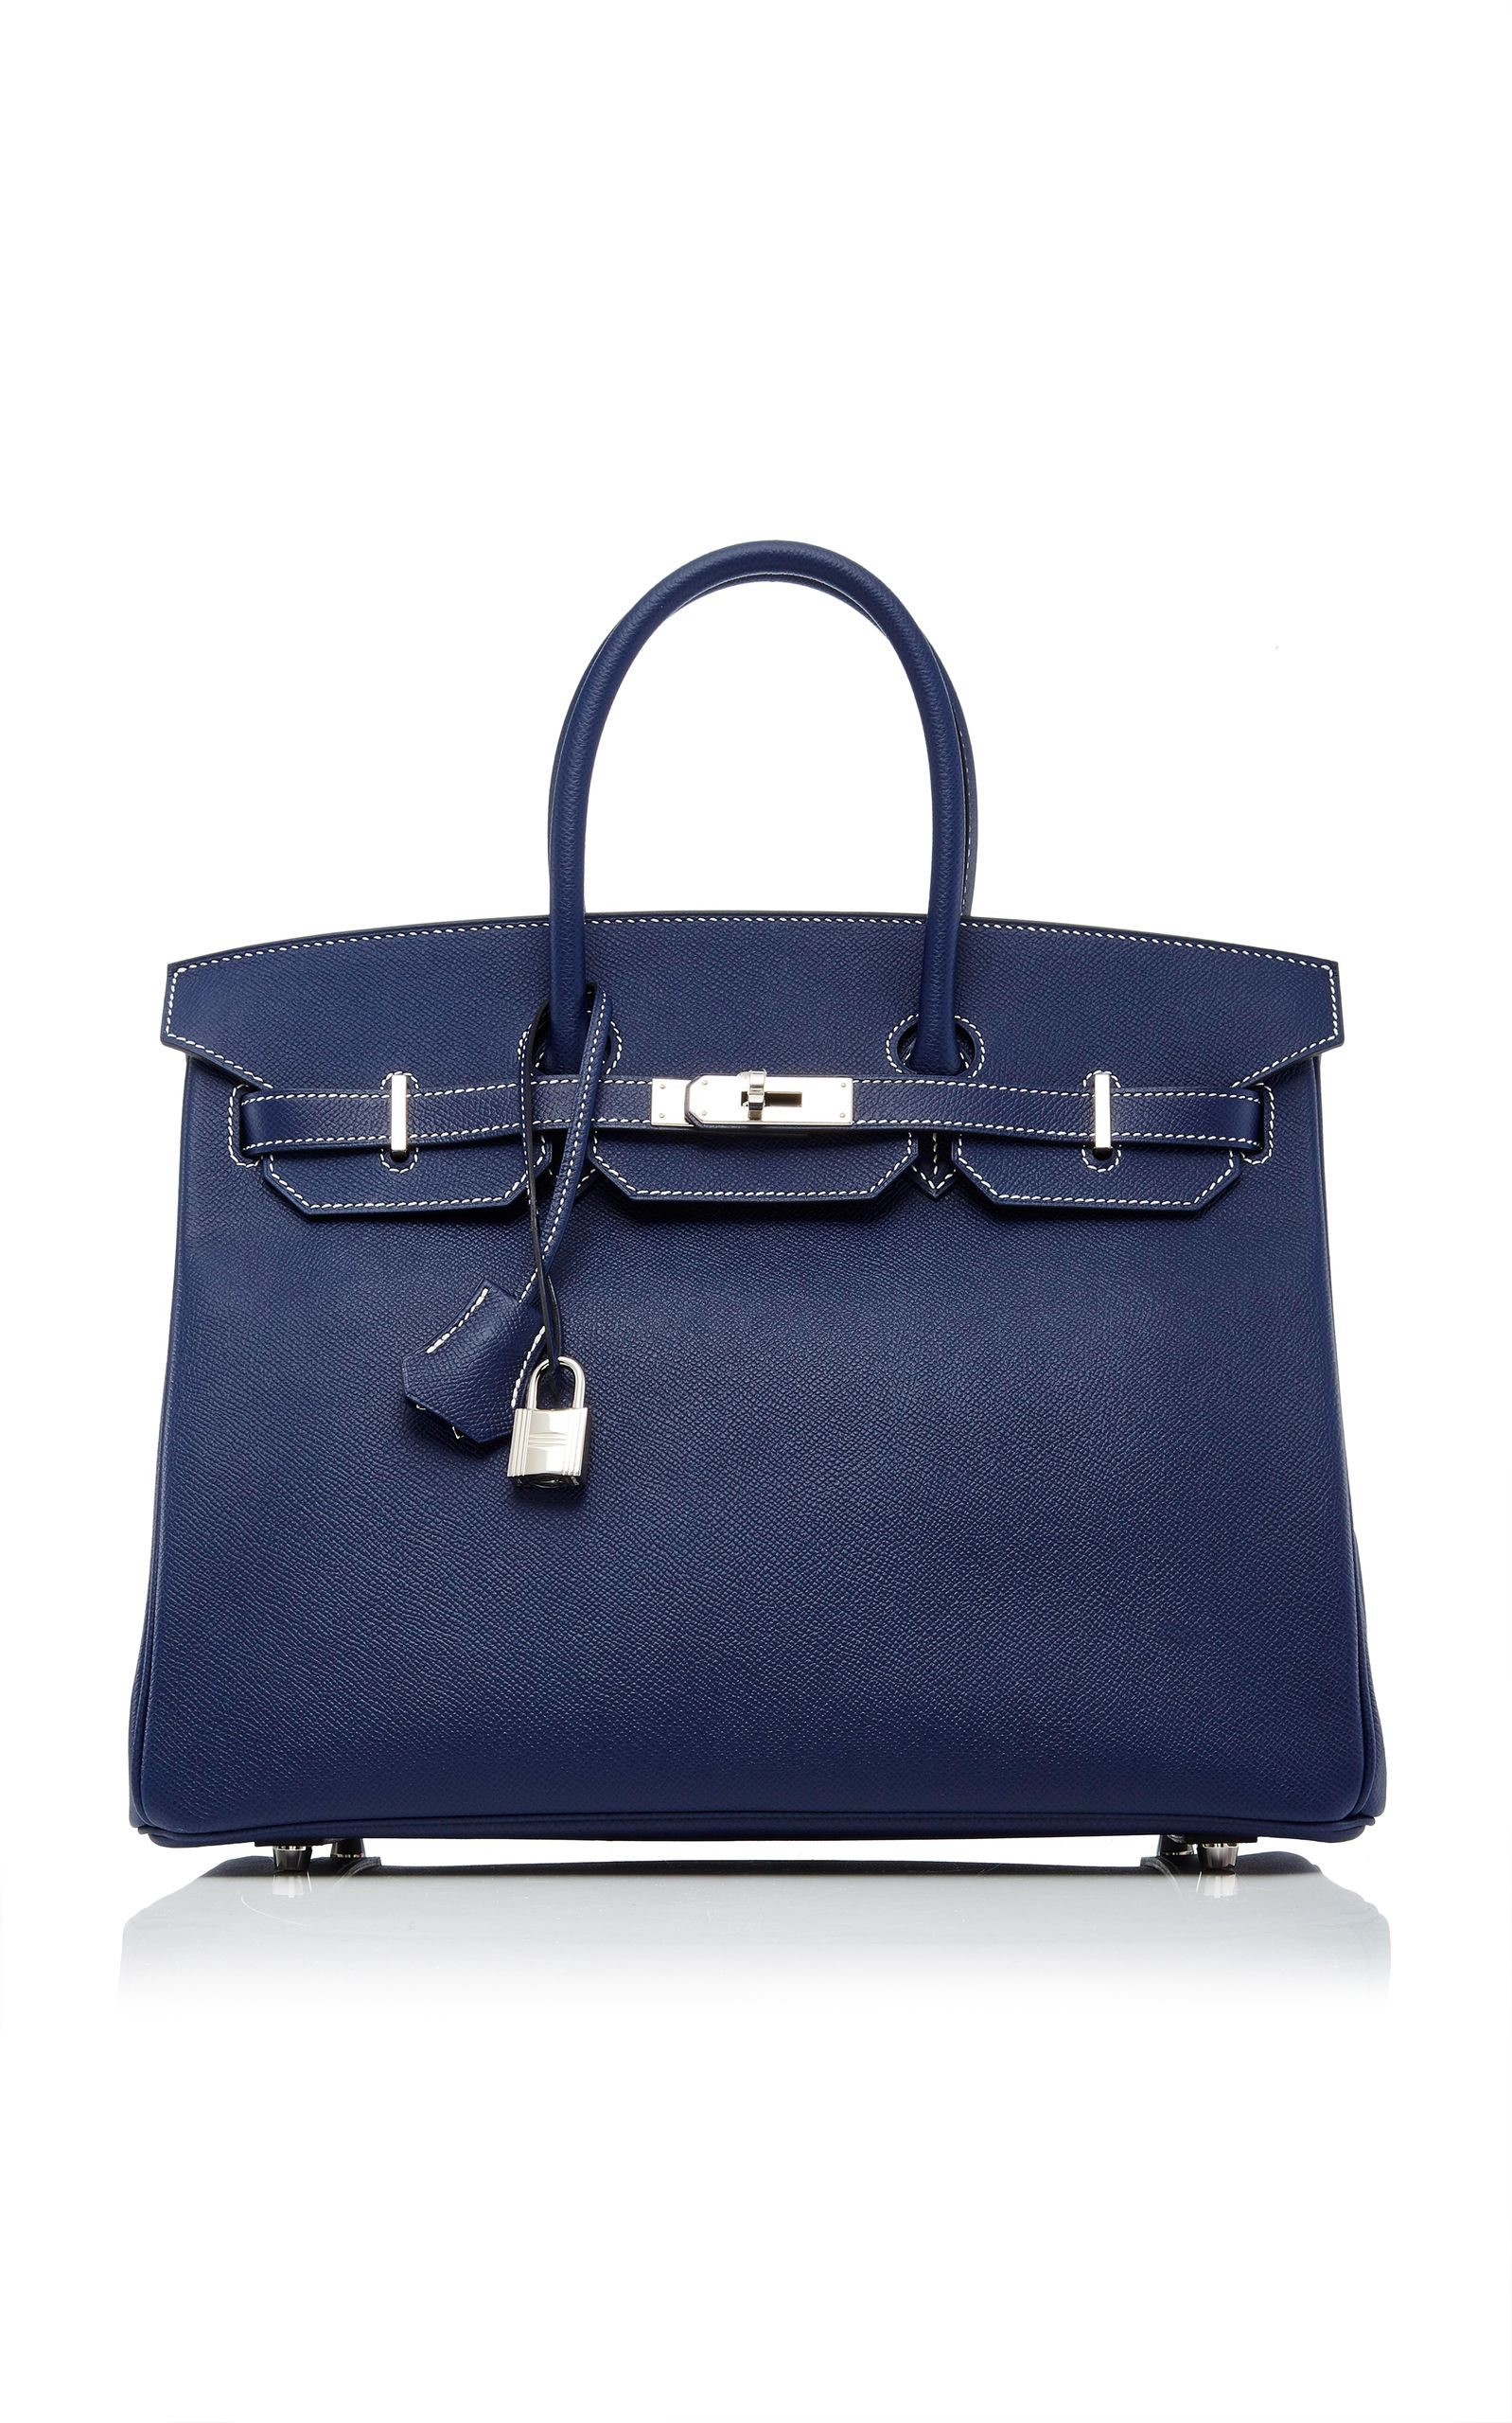 c9a70bcbae4e HERITAGE AUCTIONS SPECIAL COLLECTIONS HERMÈS 35CM BLUE NUIT EPSOM LEATHER  SPECIAL ORDER HORSESHOE BIRKIN.  heritageauctionsspecialcollections  bags   leather ...